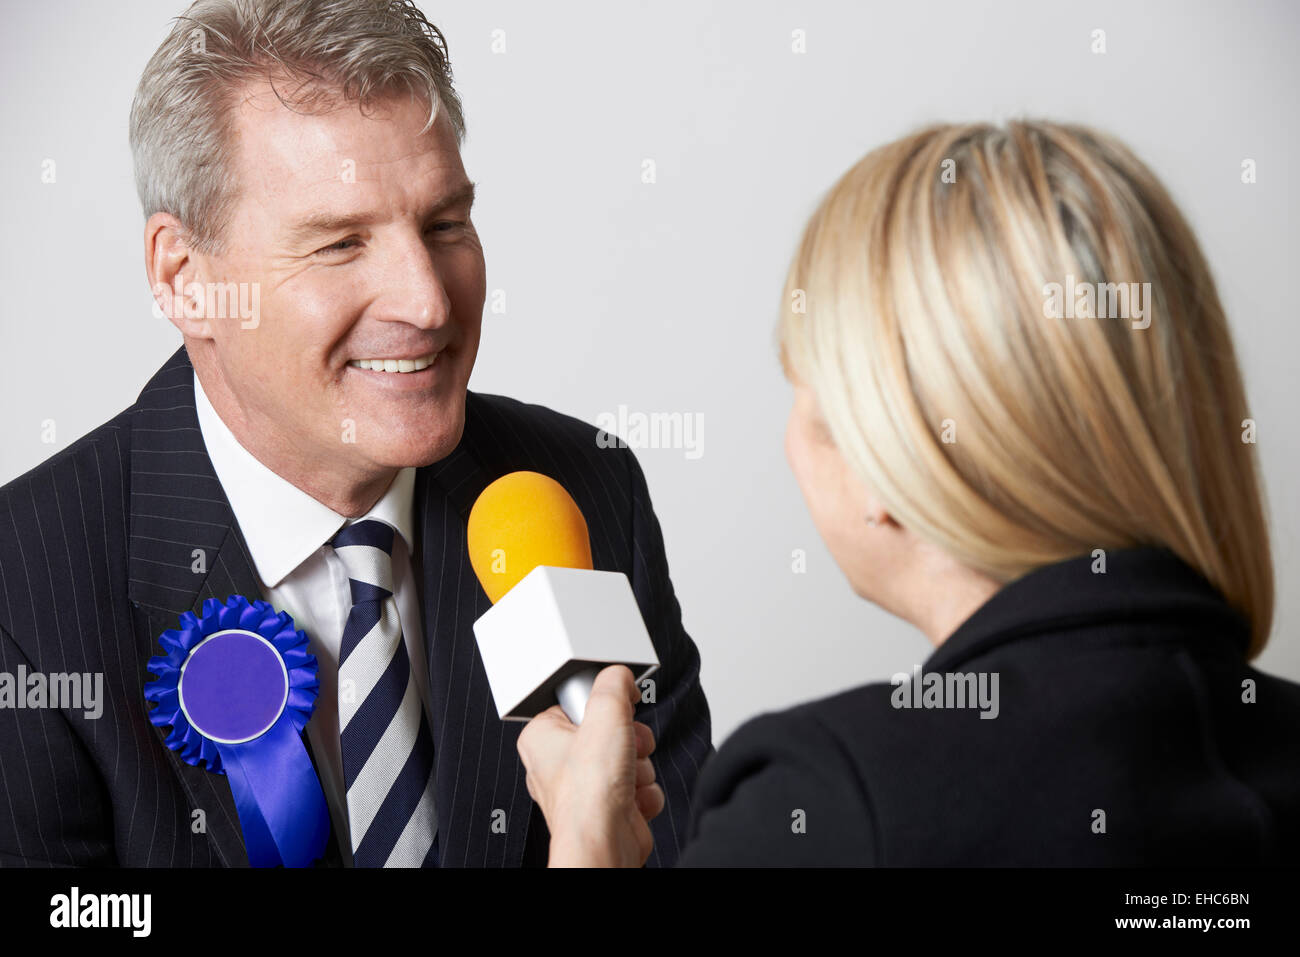 Politician Being Interviewed By Journalist During Election - Stock Image